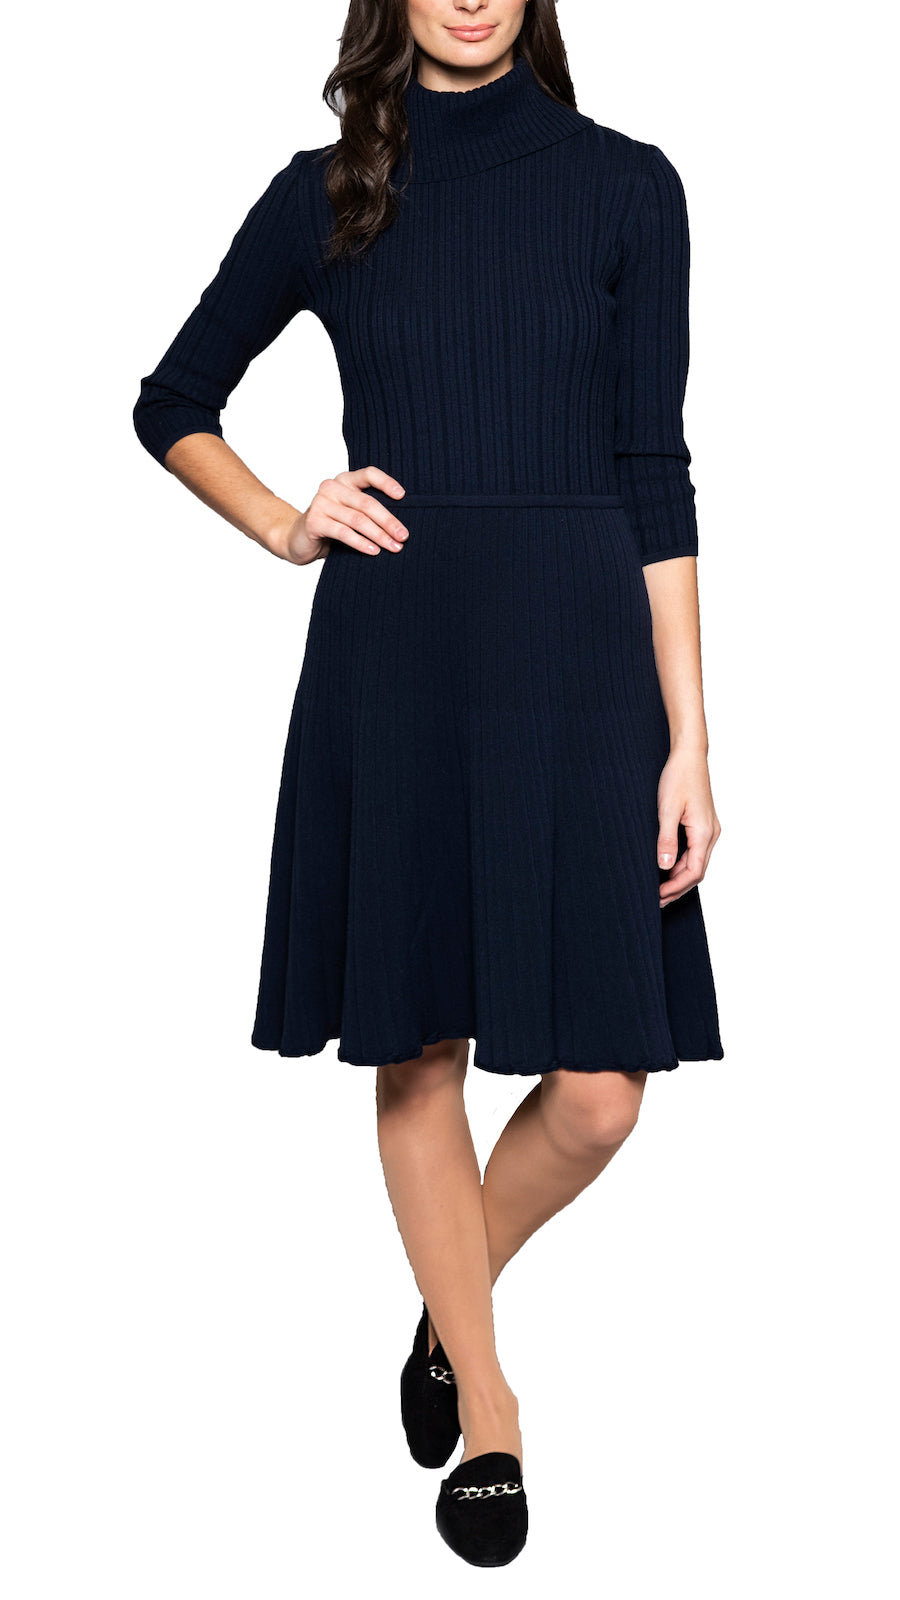 CONTEMPO Carlina fit-and-flare knitted dress, Navy